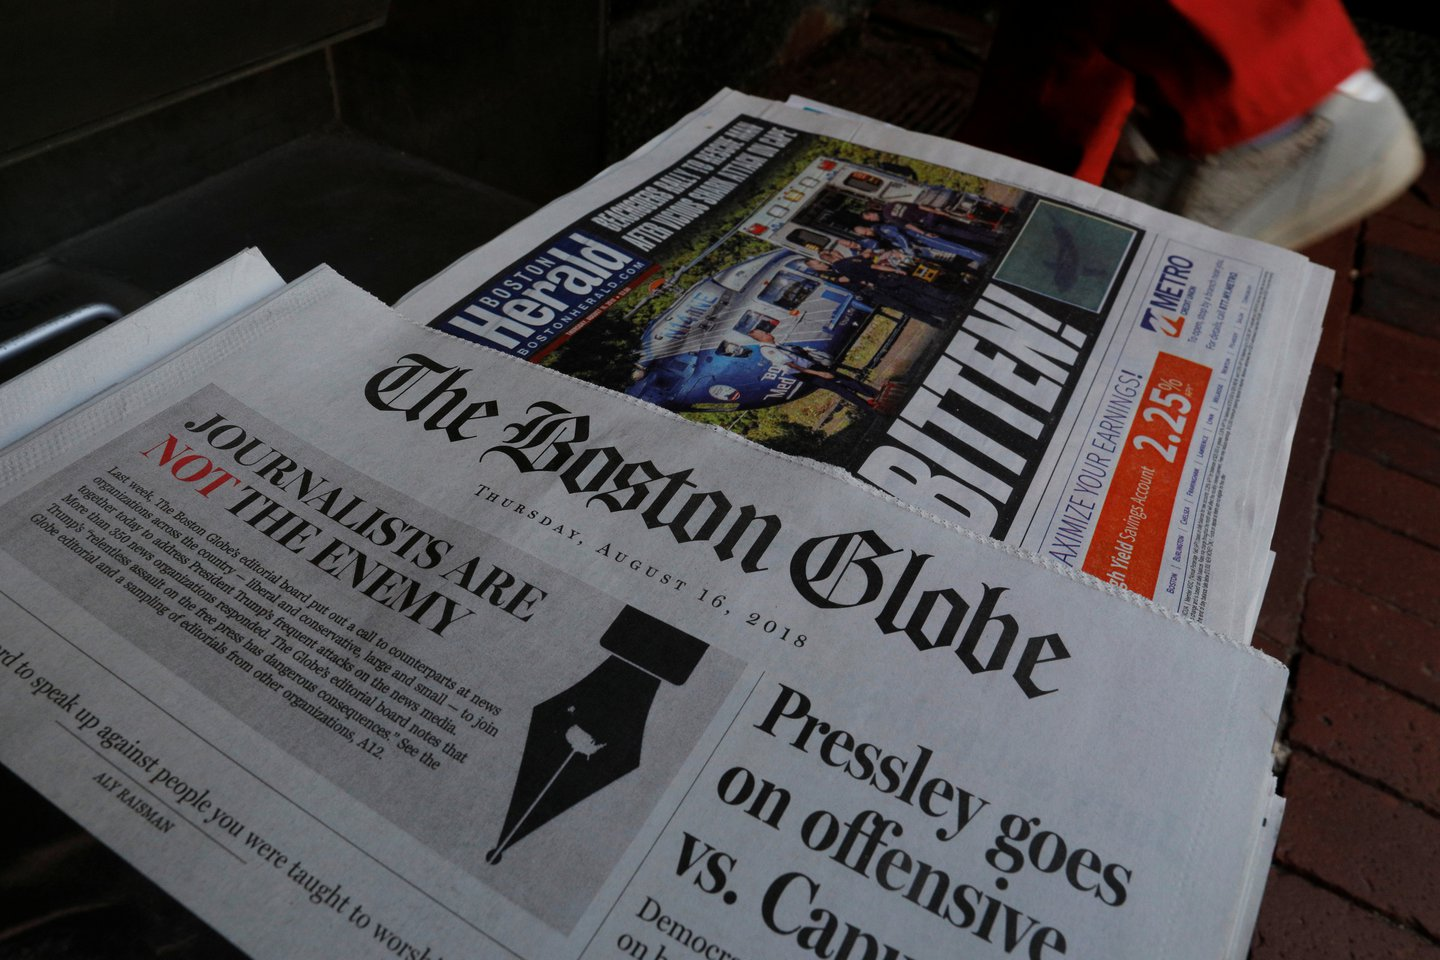 Boston Globe free press editorial on newsstand